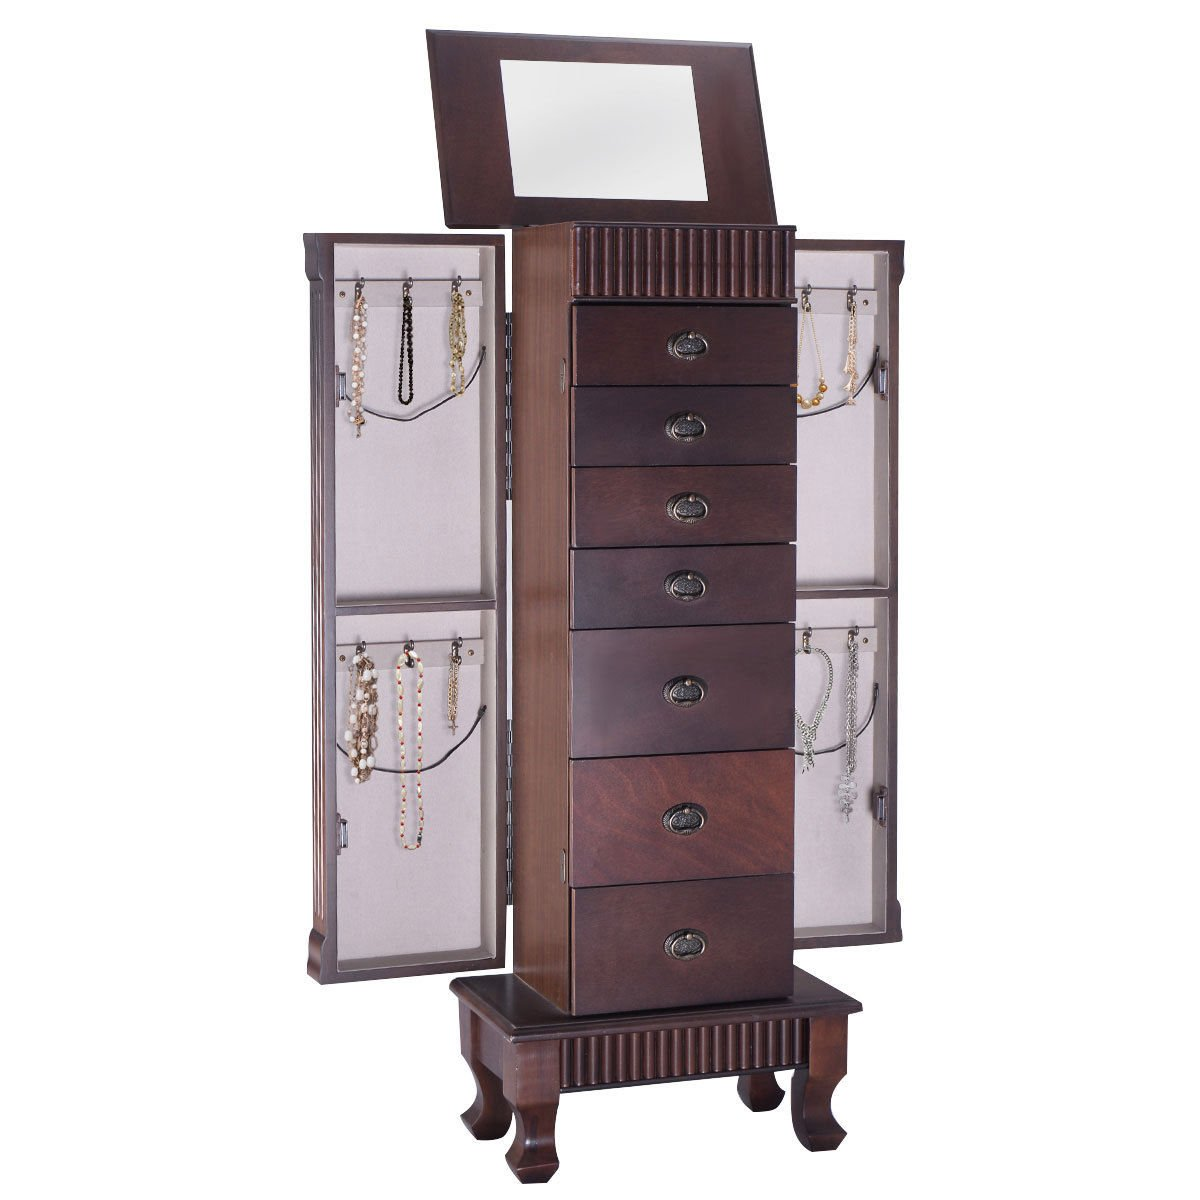 Giantex Jewelry Armoire Chest Cabinet Organizer Wood Bedroom Furniture with 1 Makeup Mirror Lid 12 Necklace Hooks Swing Door Makeup Storage Drawer Stand Large Standing Jewellery Armoire w/ 7 Drawers HW52733